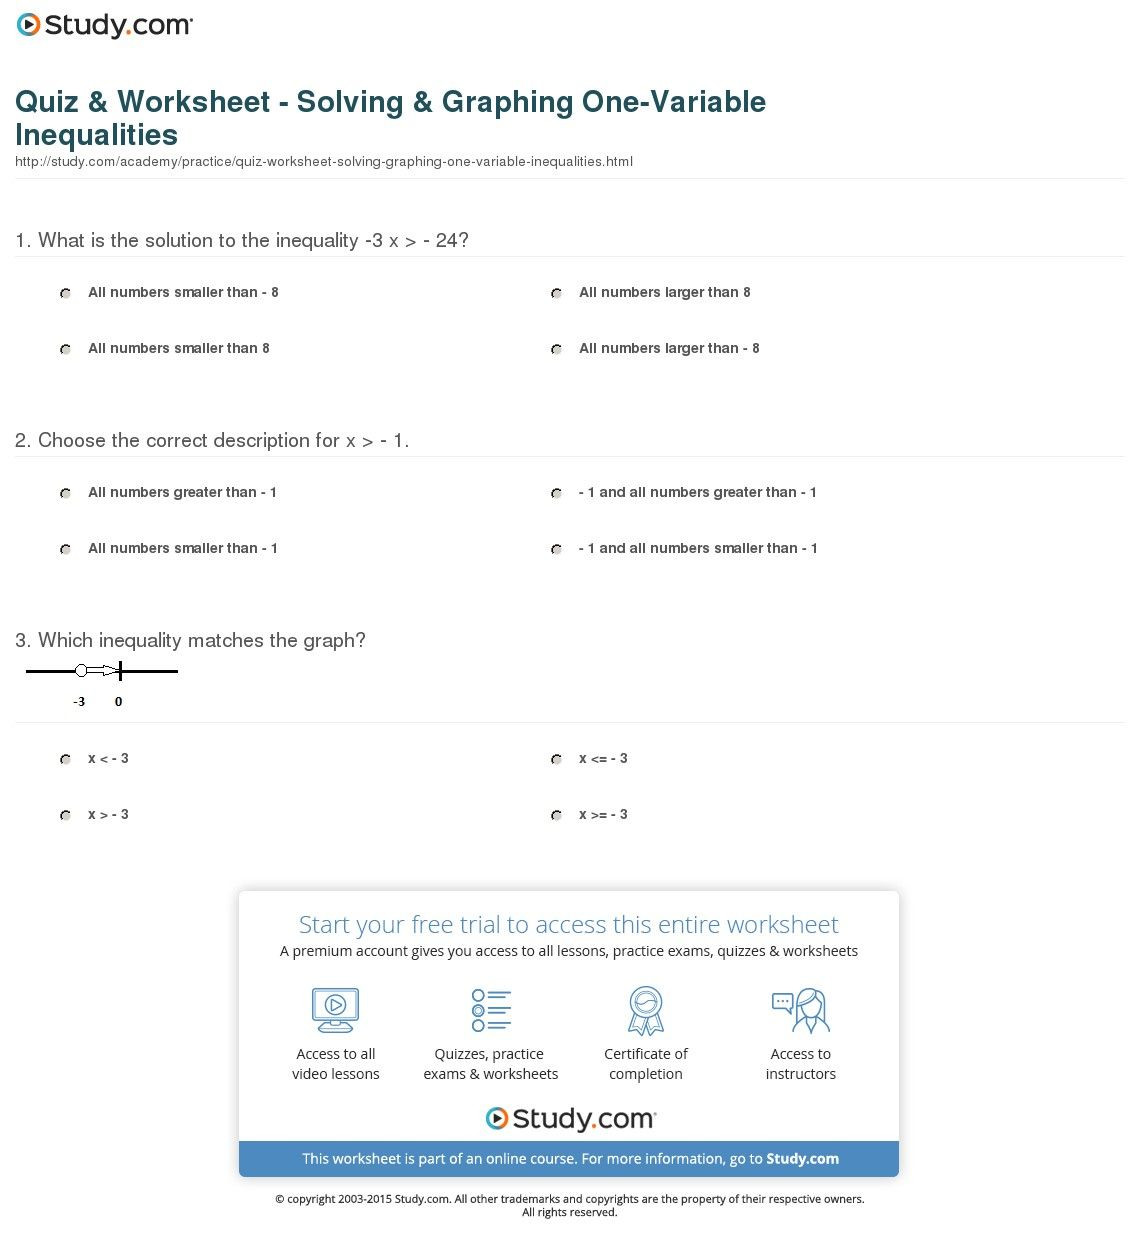 6th Grade Inequalities Worksheet Quiz Worksheet solving Graphing E Variable Inequalities